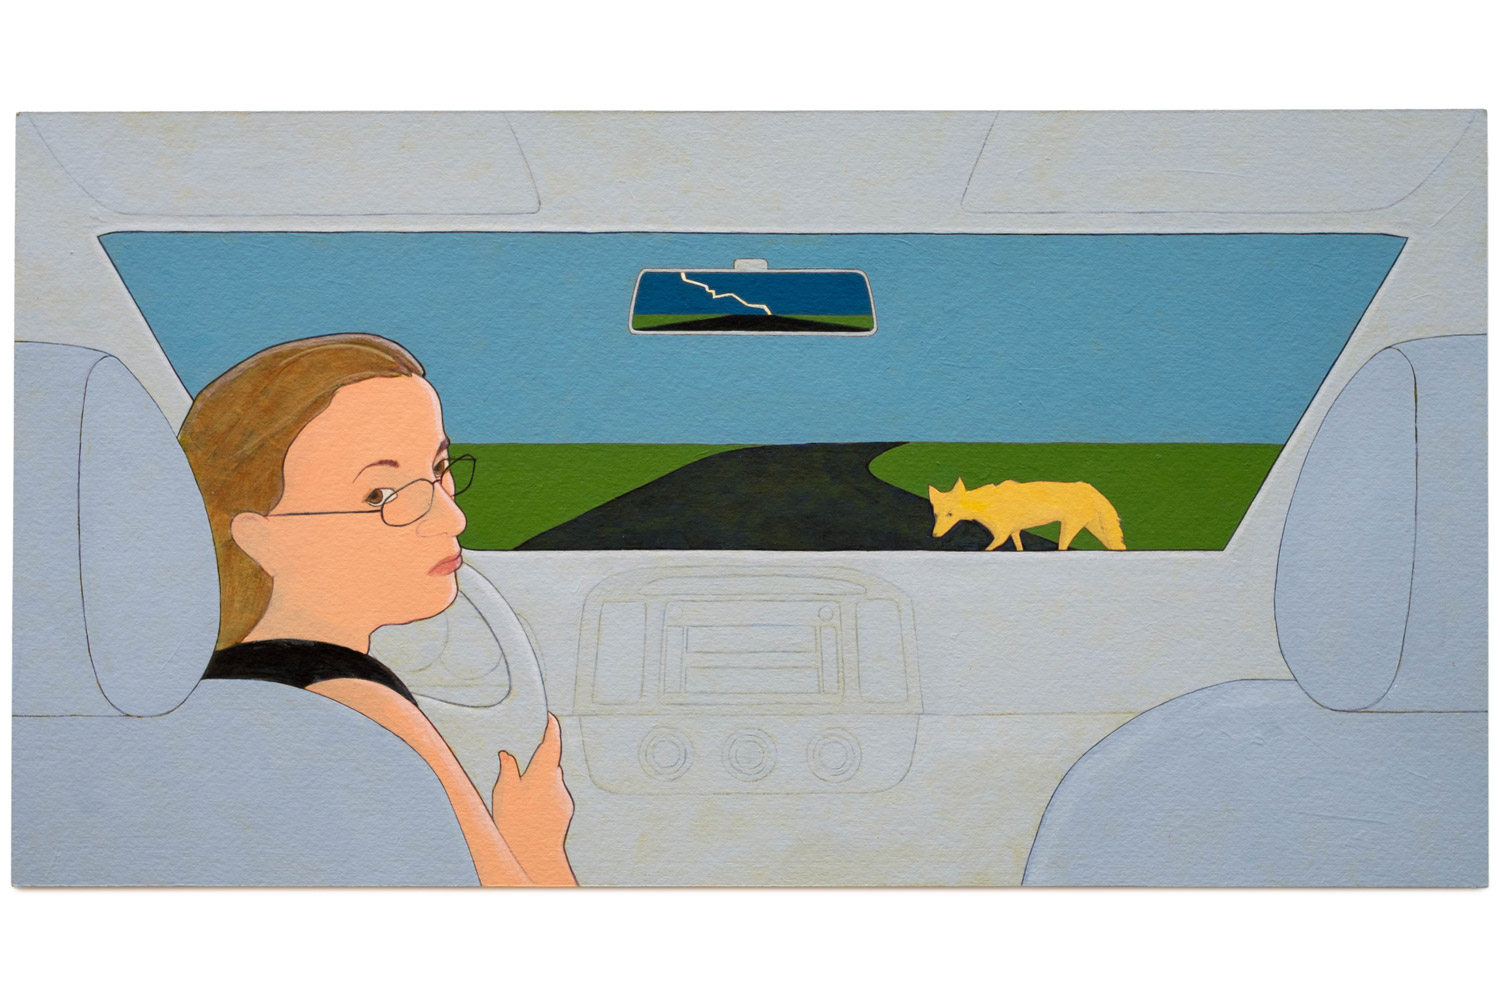 "Denial (coyote crossing),  2014 Self-portrait, Acrylic on paper, 9.5"" x 18"""